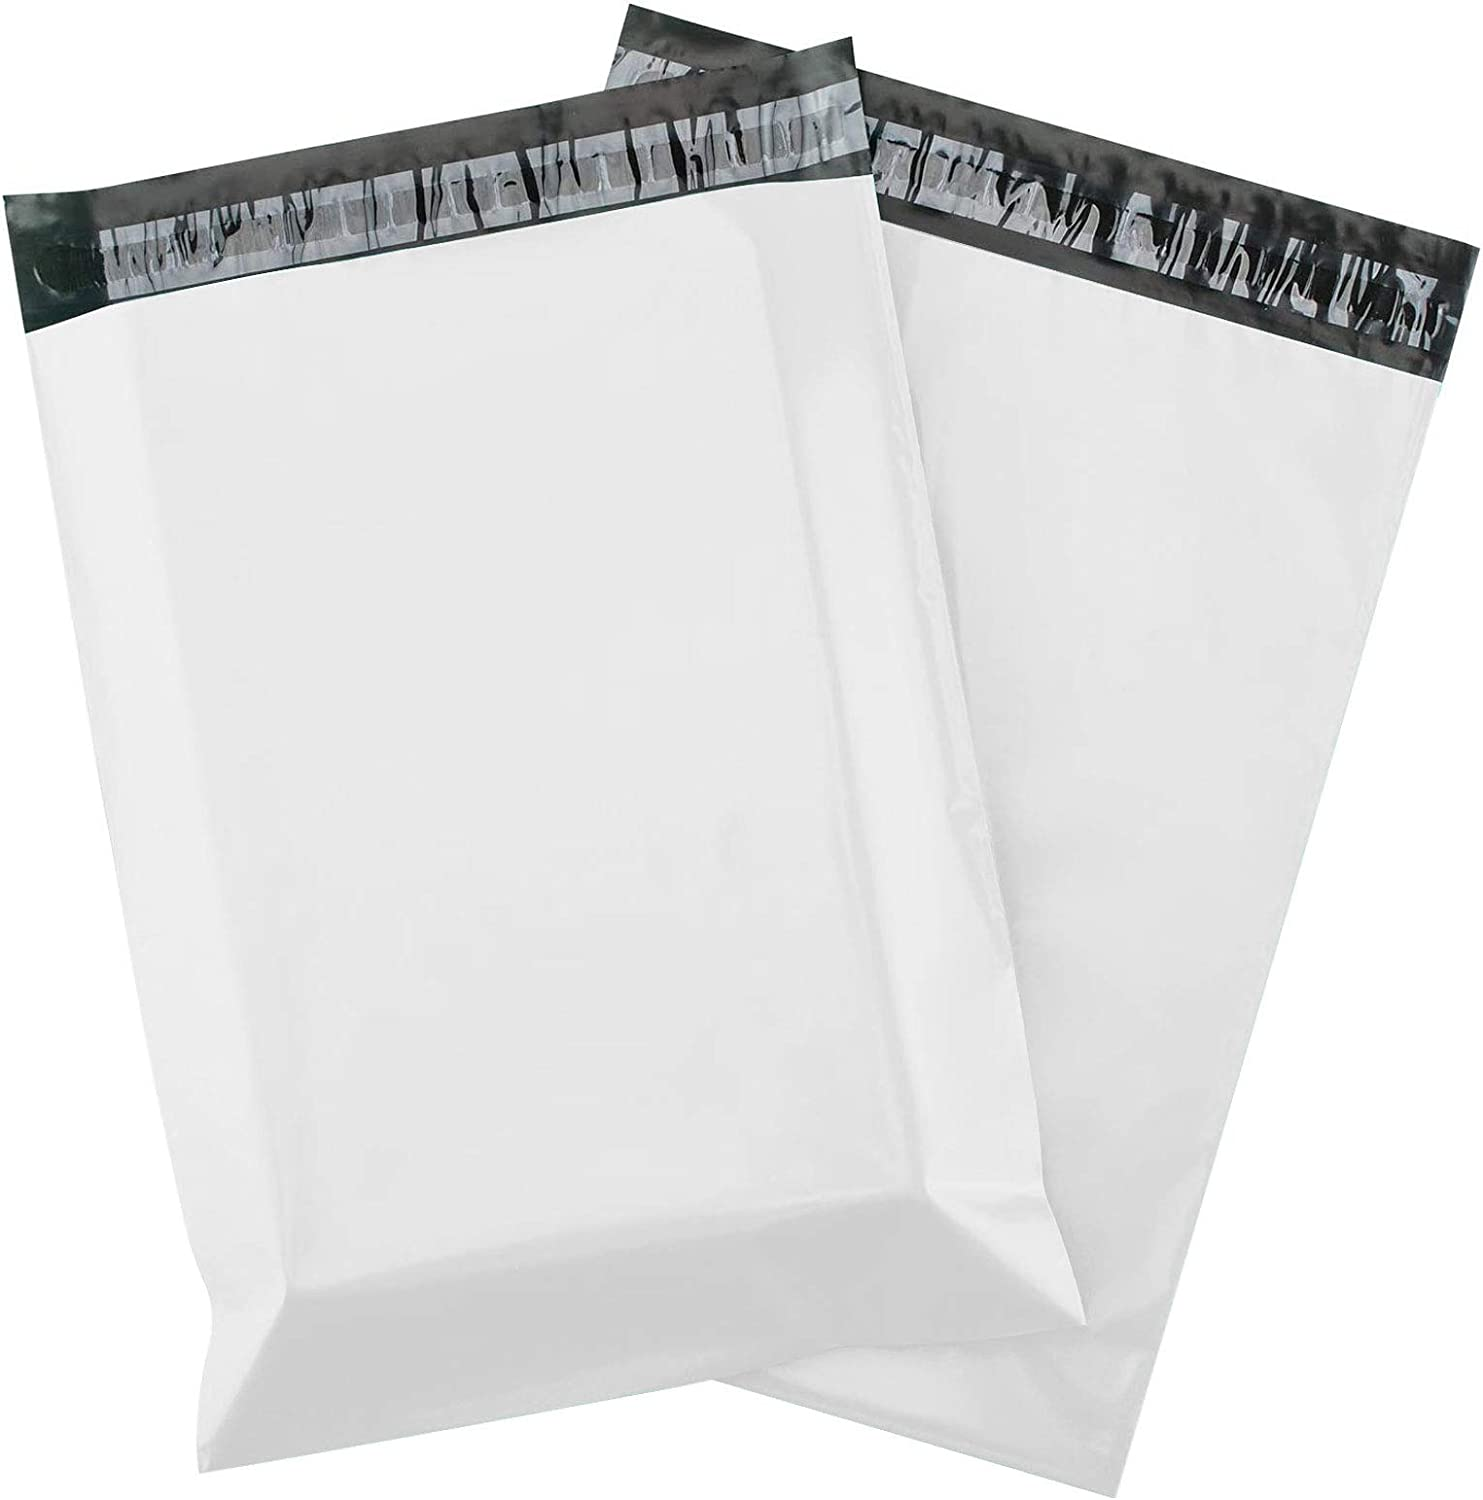 100pcs 11x16.5 Inches White Poly Mailers Shipping Envelops Self Sealing Envelopes Boutique Custom Bags Enhanced Durability Multipurpose Envelopes Keep Items Safe Protected